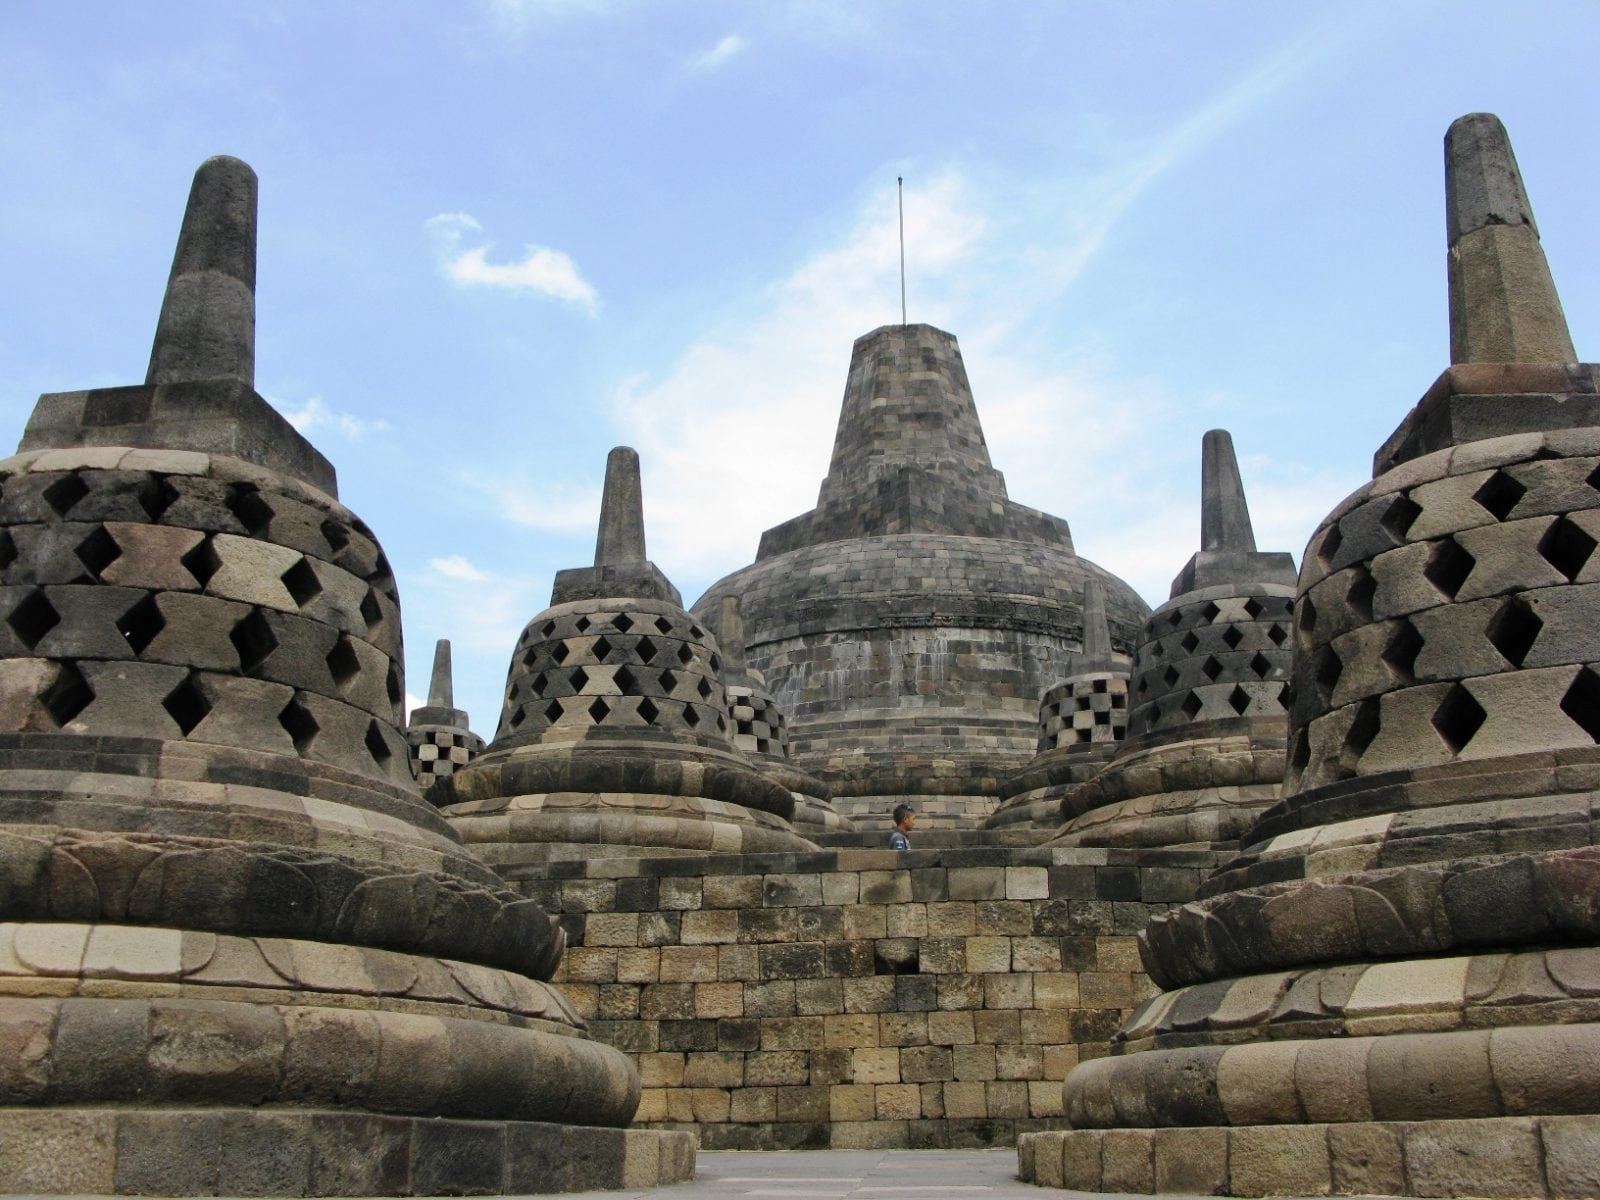 Borobudur tour Indonesia tour Malcolm David Eckel tour archaeology tour